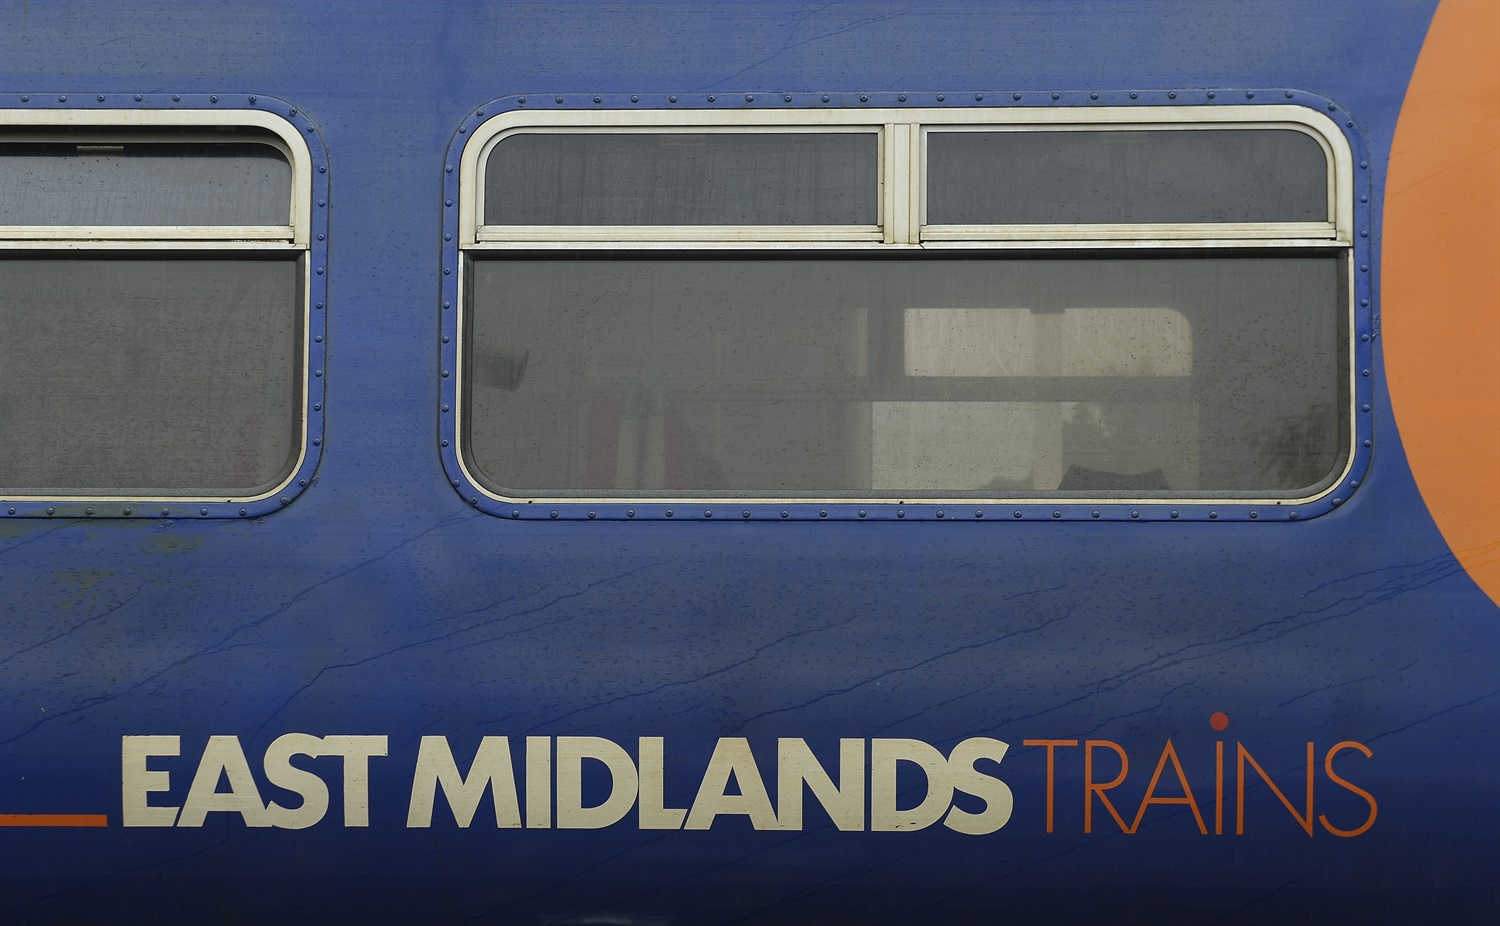 DfT awards East Midlands rail franchise to Abellio